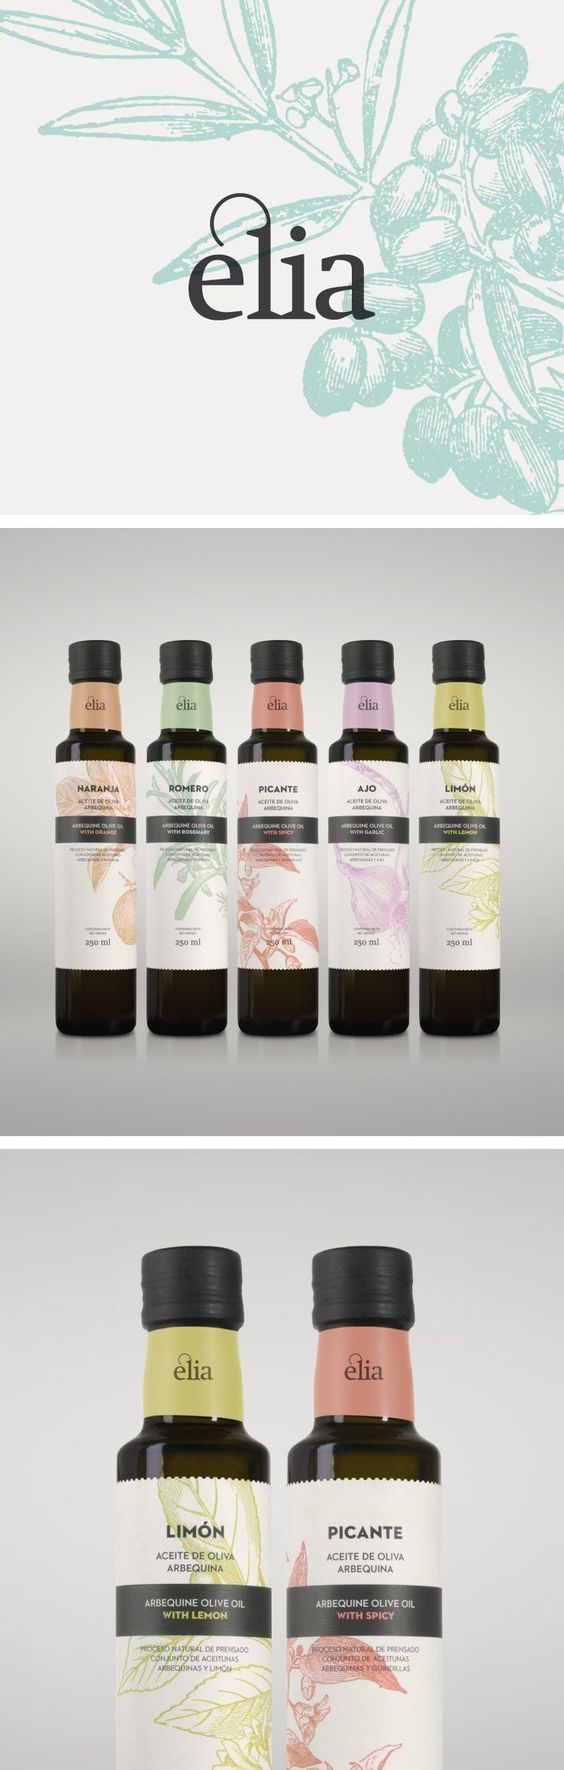 Elia Olive Oil Packaging by Atipus | Fivestar Branding Agency – Design and Branding Agency & Inspiration Gallery